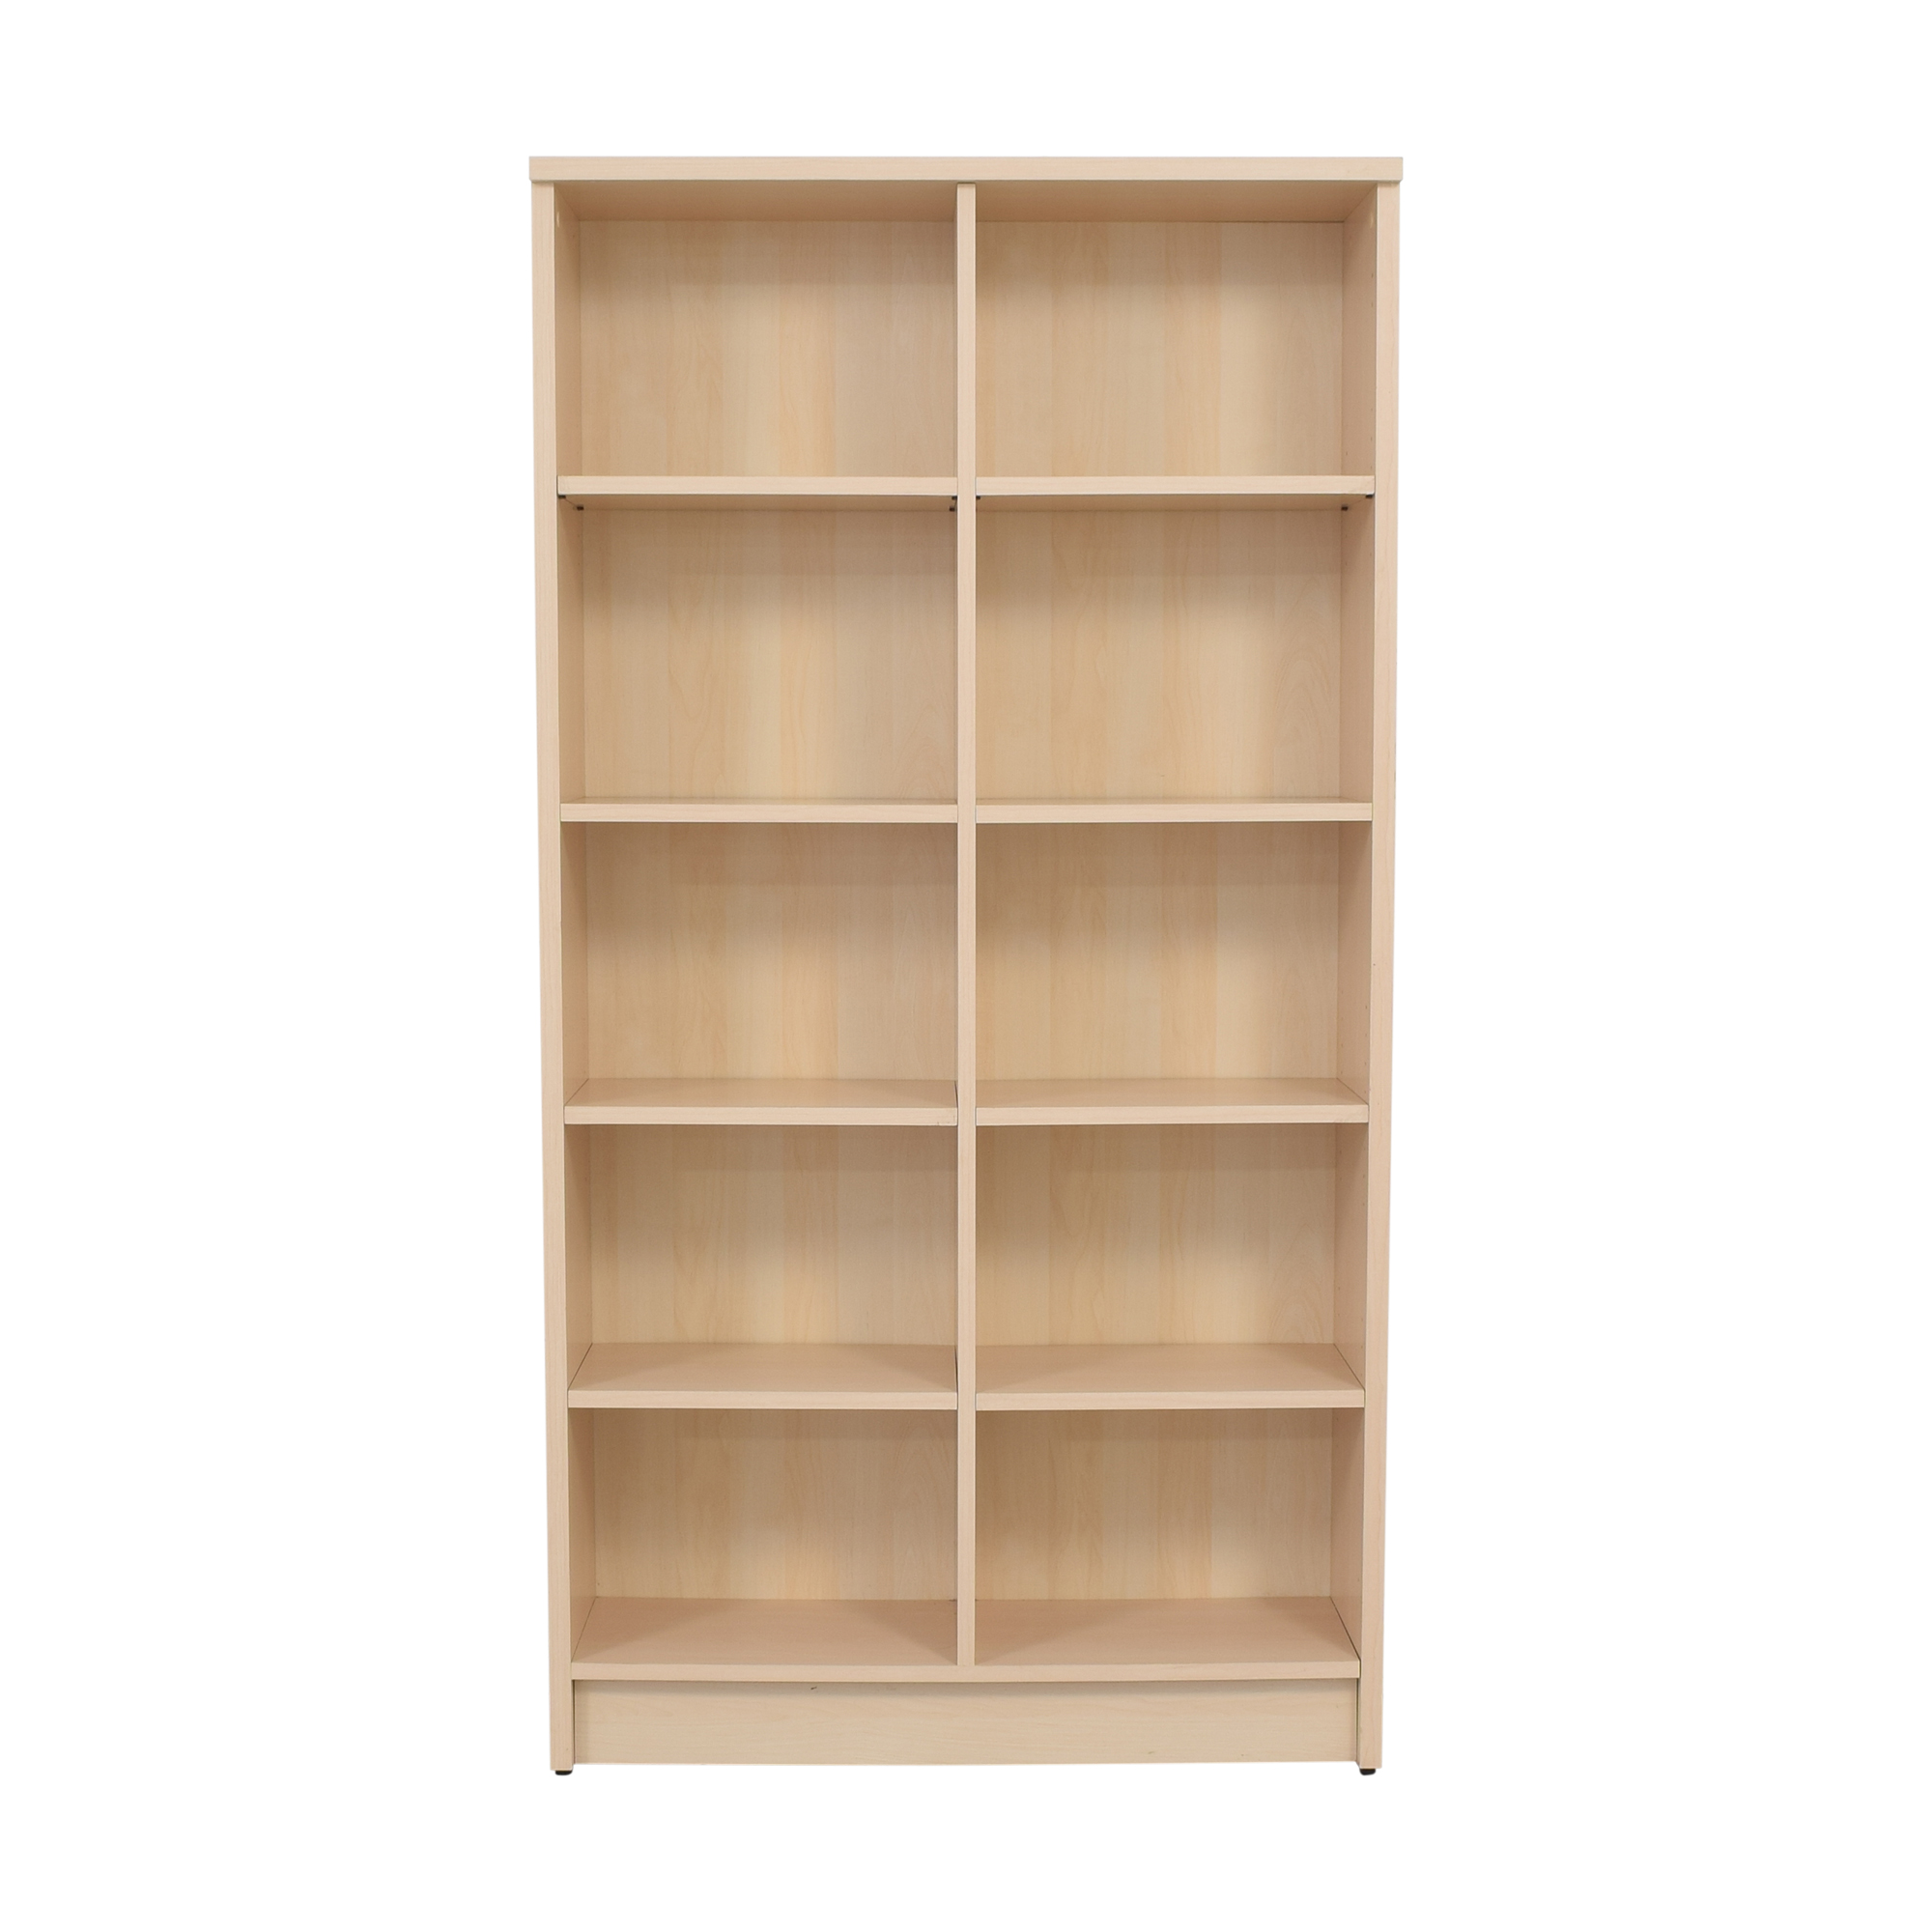 Danish Made Bookcase dimensions